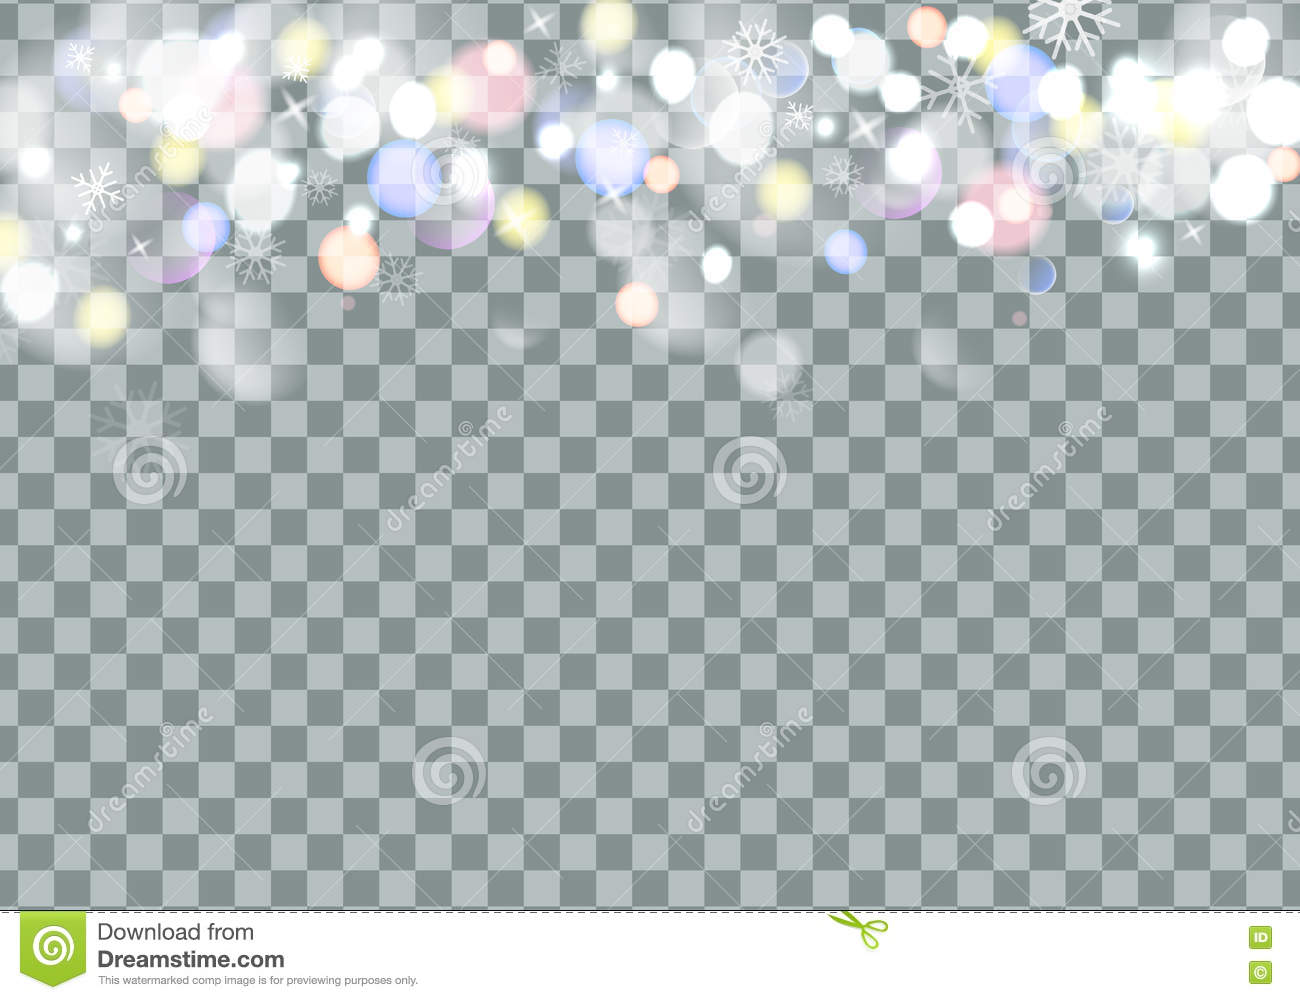 Free Download Of Christmas Wallpaper With Snow Falling Falling Christmas Shining Transparent Beautiful Snow